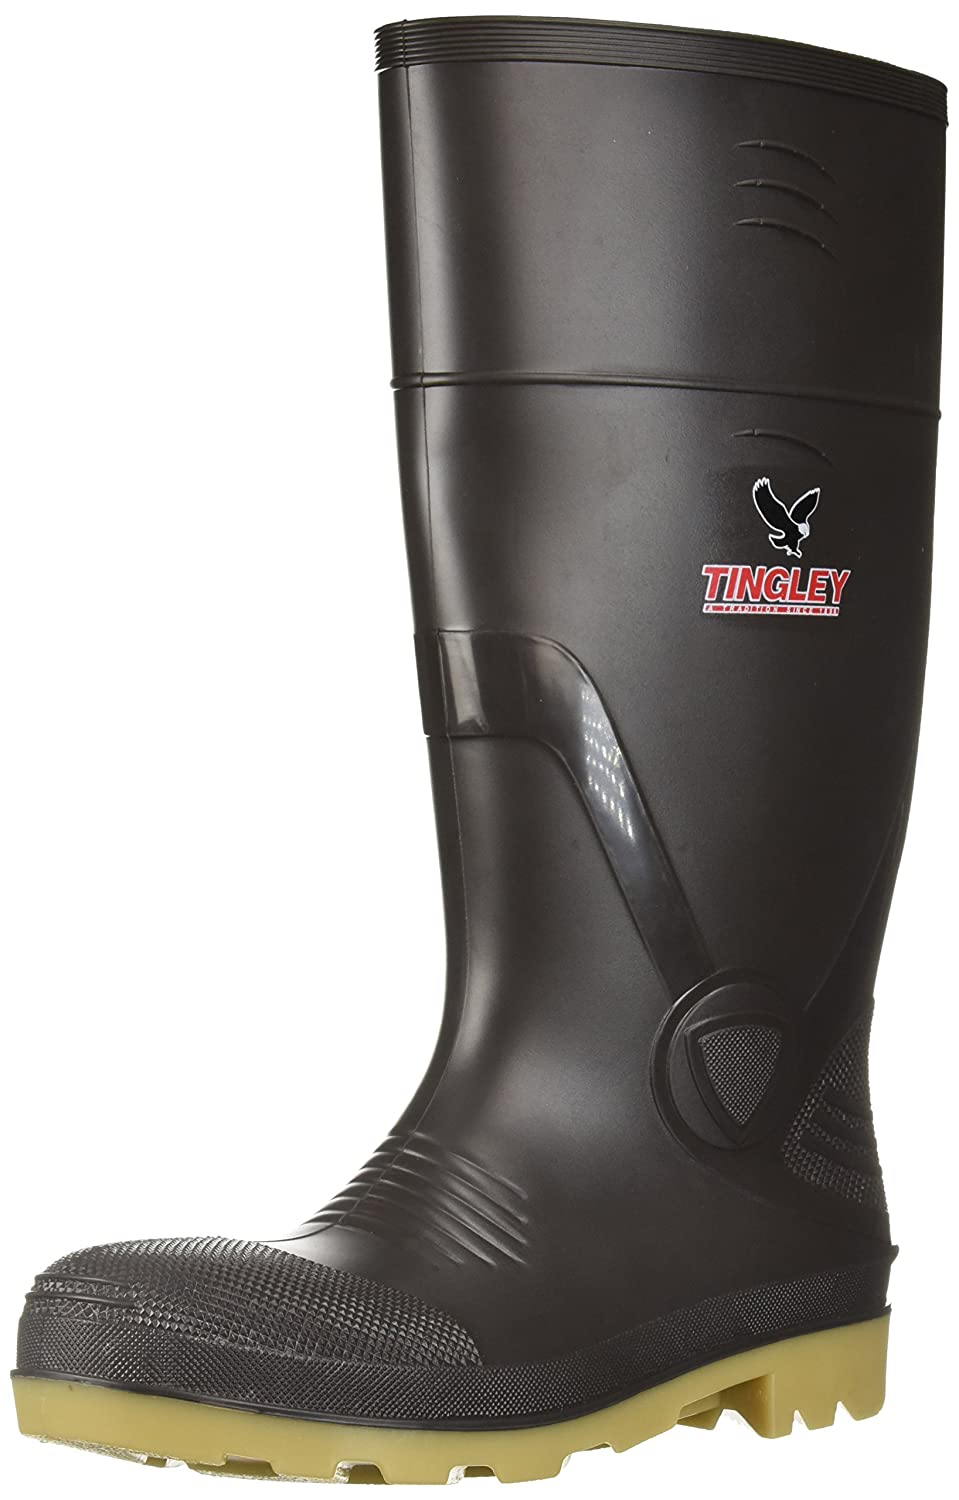 Tingley Men's 15 Waterproof Knee Rain Boots